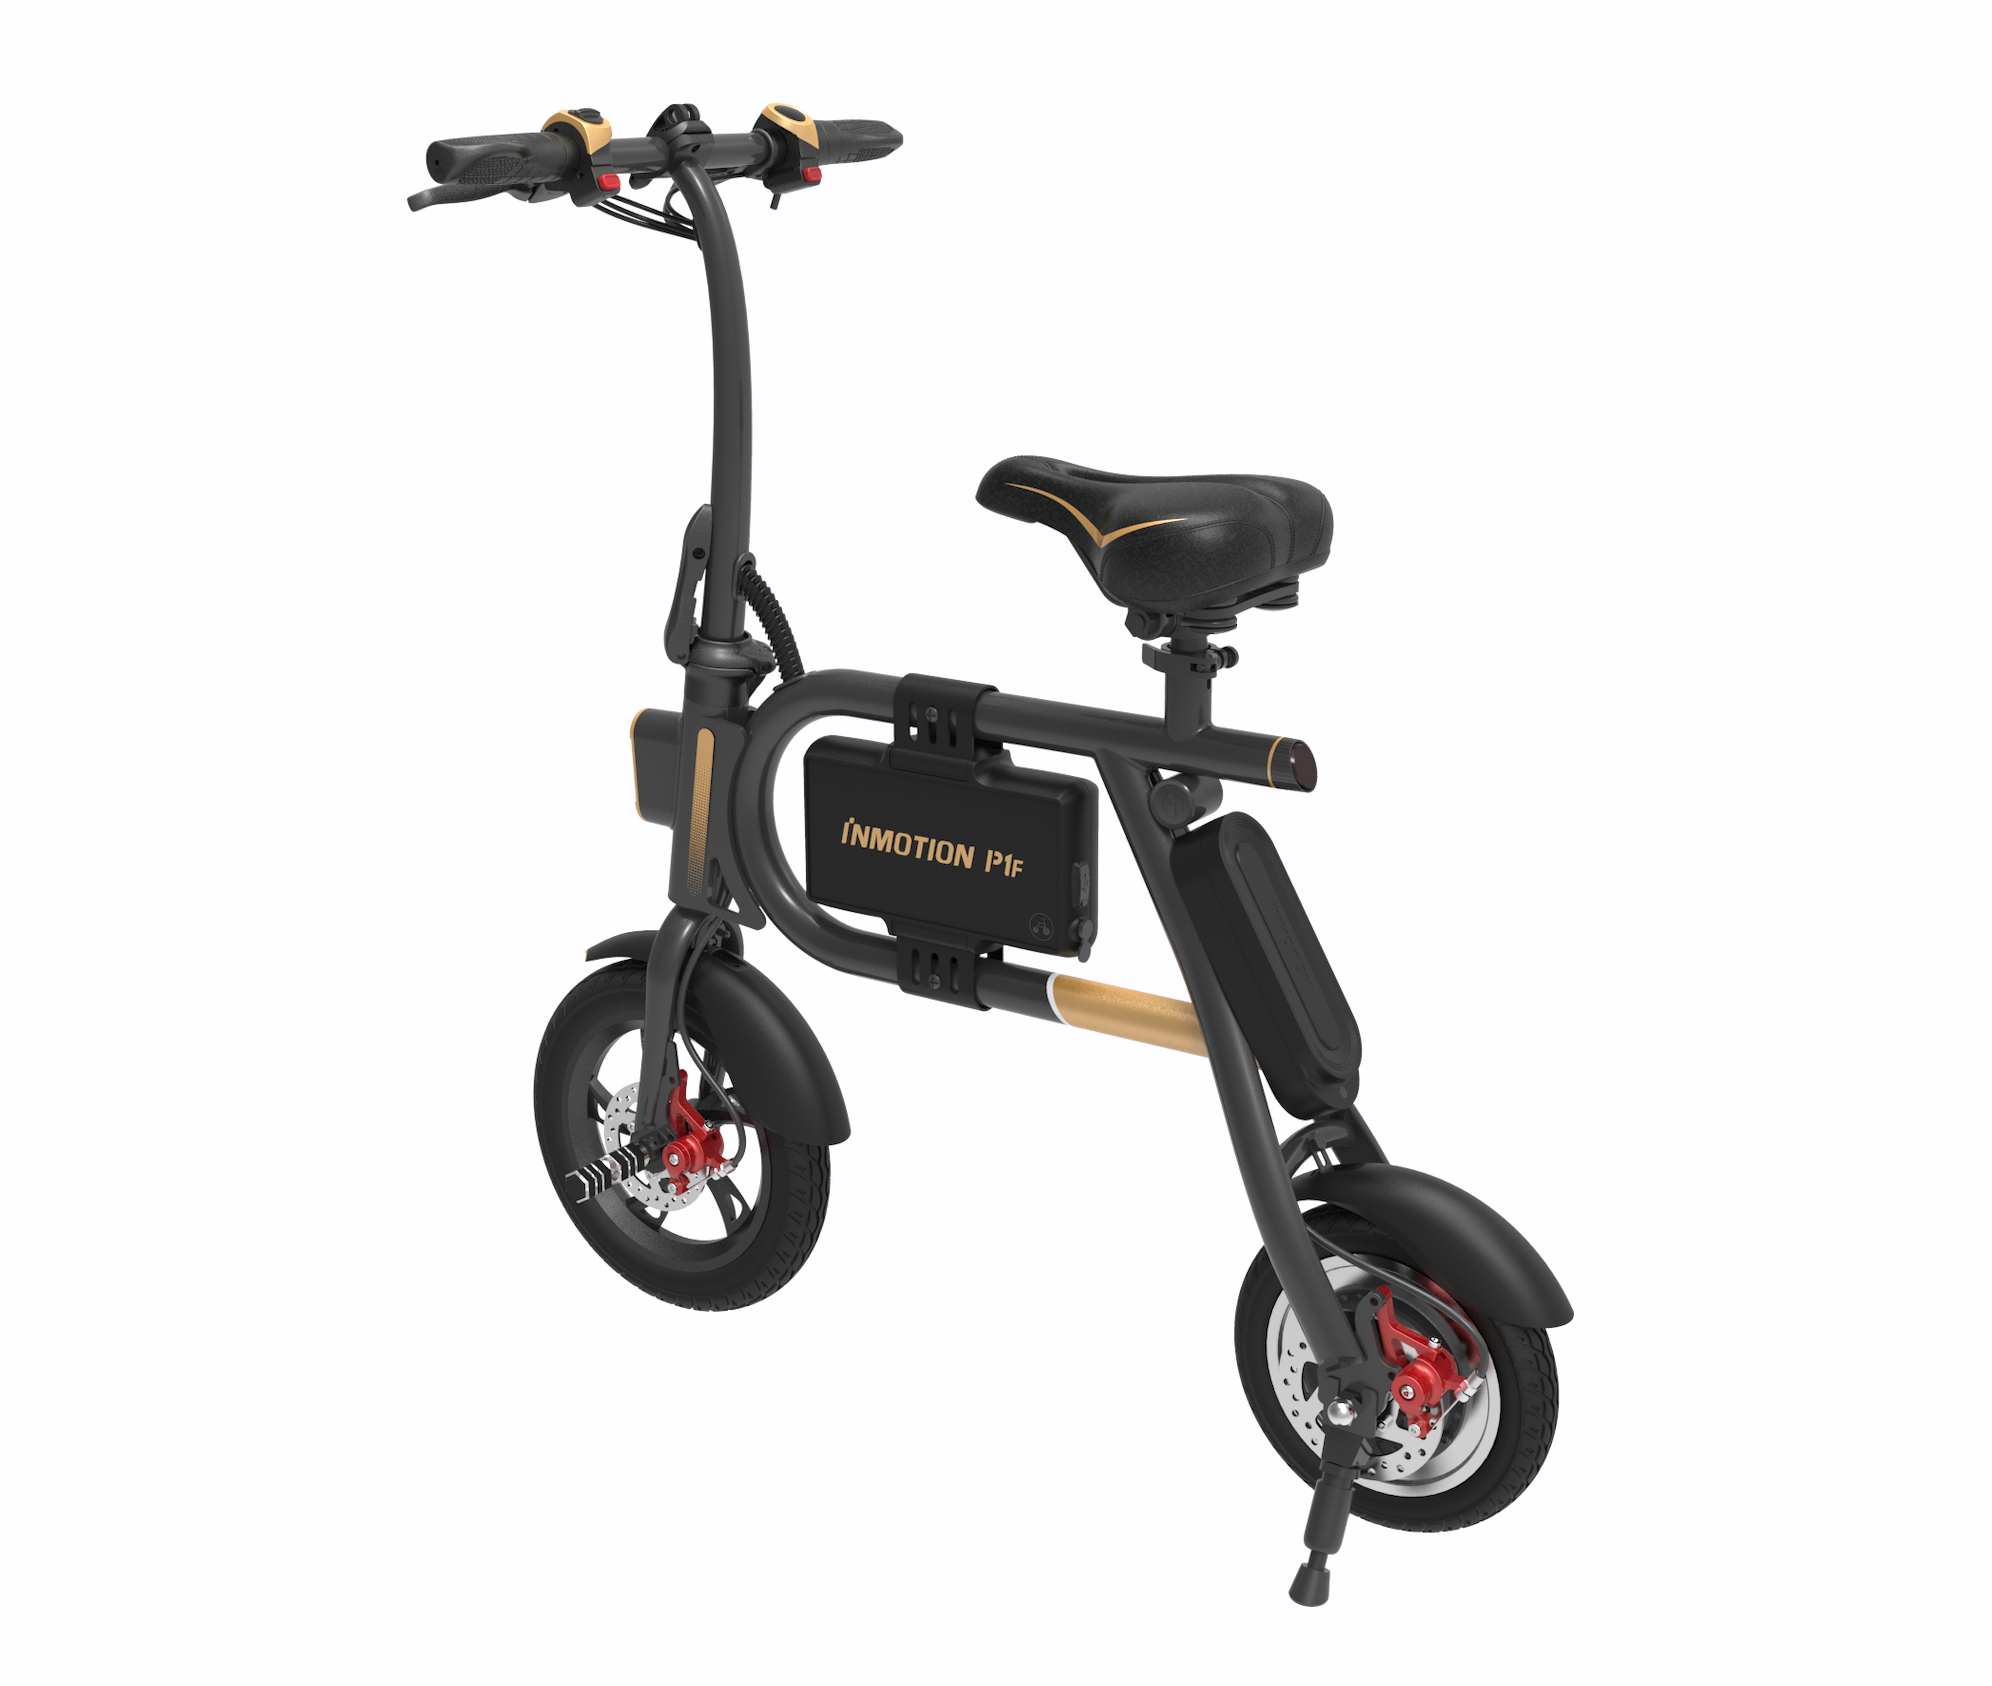 InMotion P1F Electric Scooter Rear Angled View Image